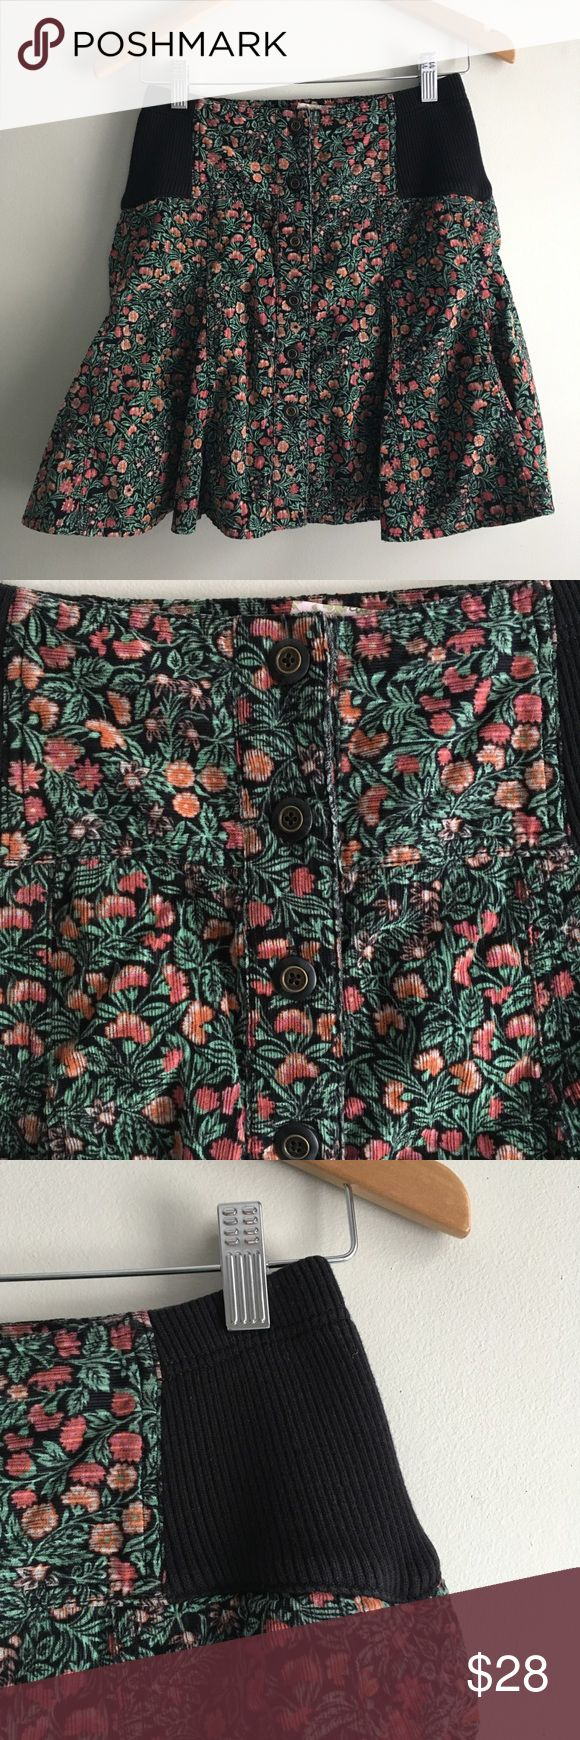 """Free People Floral Boho Velour Button Front Skirt Unique Free People skirt in a pretty floral print. Black panels along sides are elastic so there is some flexibility in the sizing. Fitted at the top and then flares about halfway down (almost like a short trumpet skirt!). Fabric is really cool - almost like a velour or velvet texture. Good used condition - no flaws to note!  13"""" waist when measured flat 17"""" long All measurements are approximate. Free People Skirts Mini"""